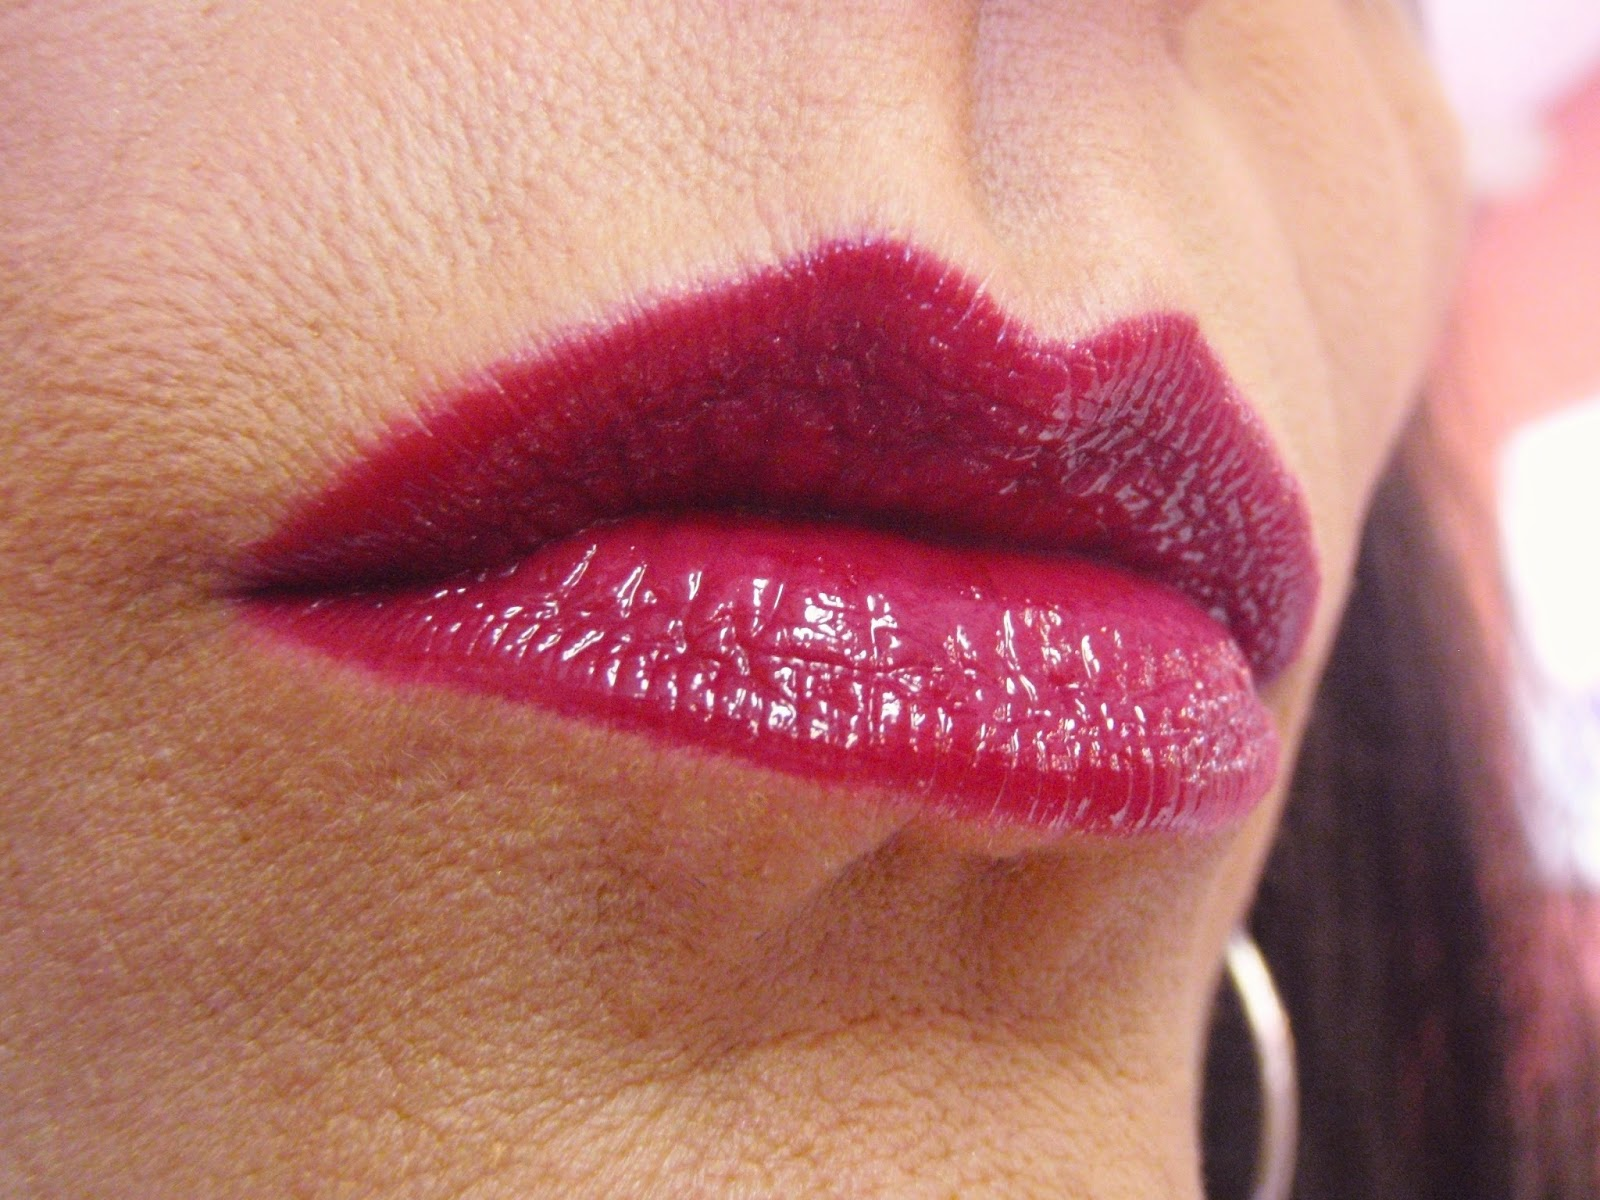 josie maran lipstain with gloss on lips